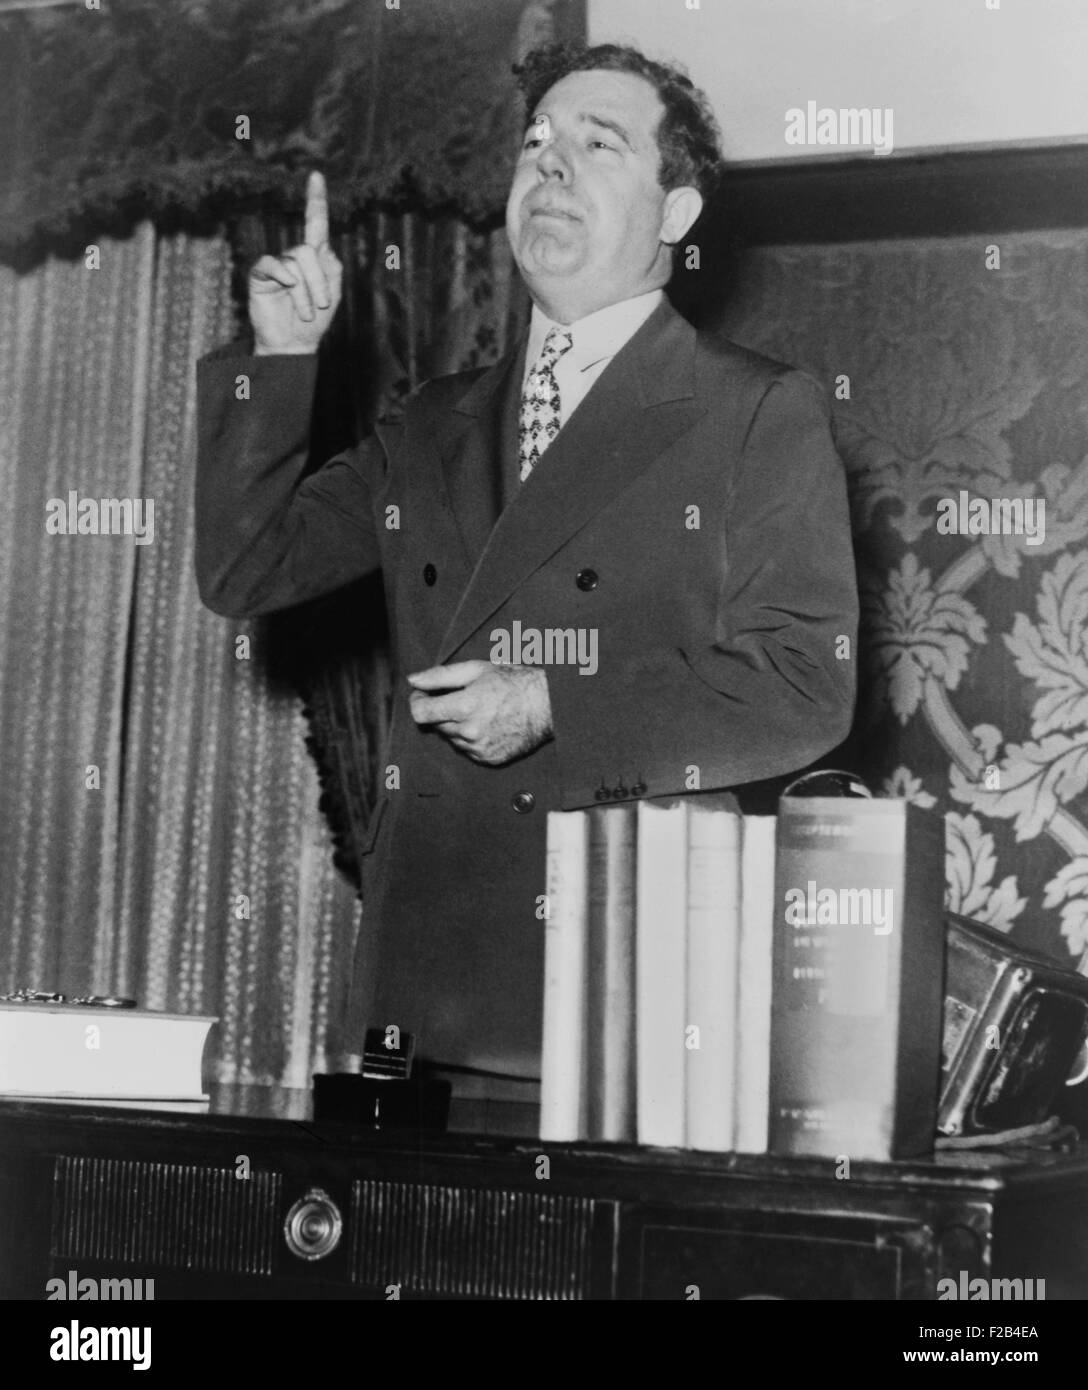 Huey P. Long in a speaking pose in 1935. He was planning to Challenge FDR in the 1936 presidential election, was - Stock Image